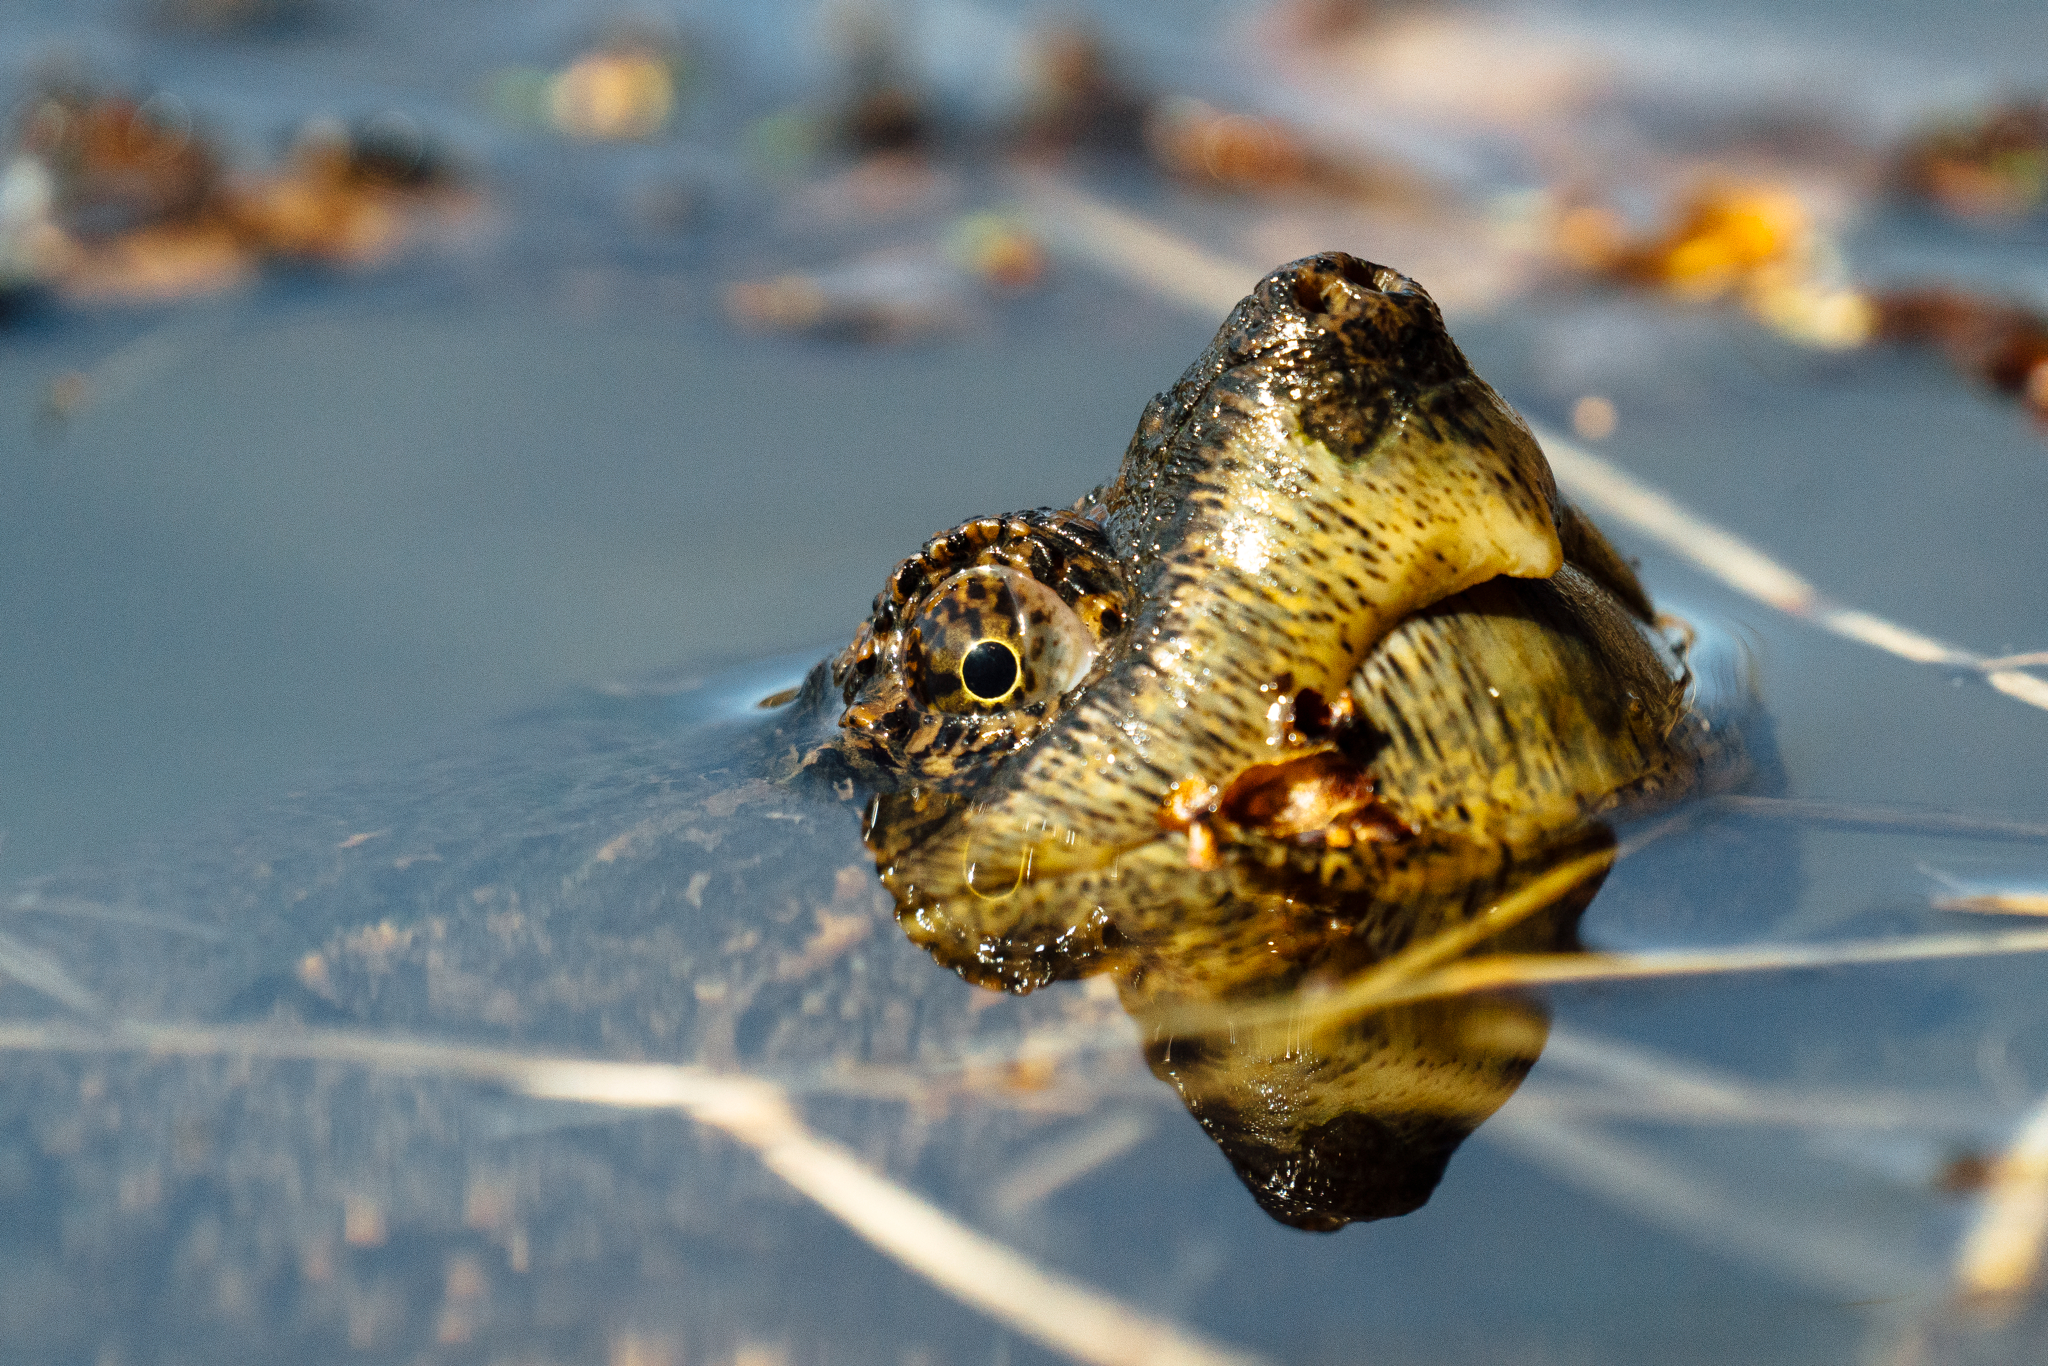 A snapping turtle in a pond by conservation photographer, Sara Montour Lewis